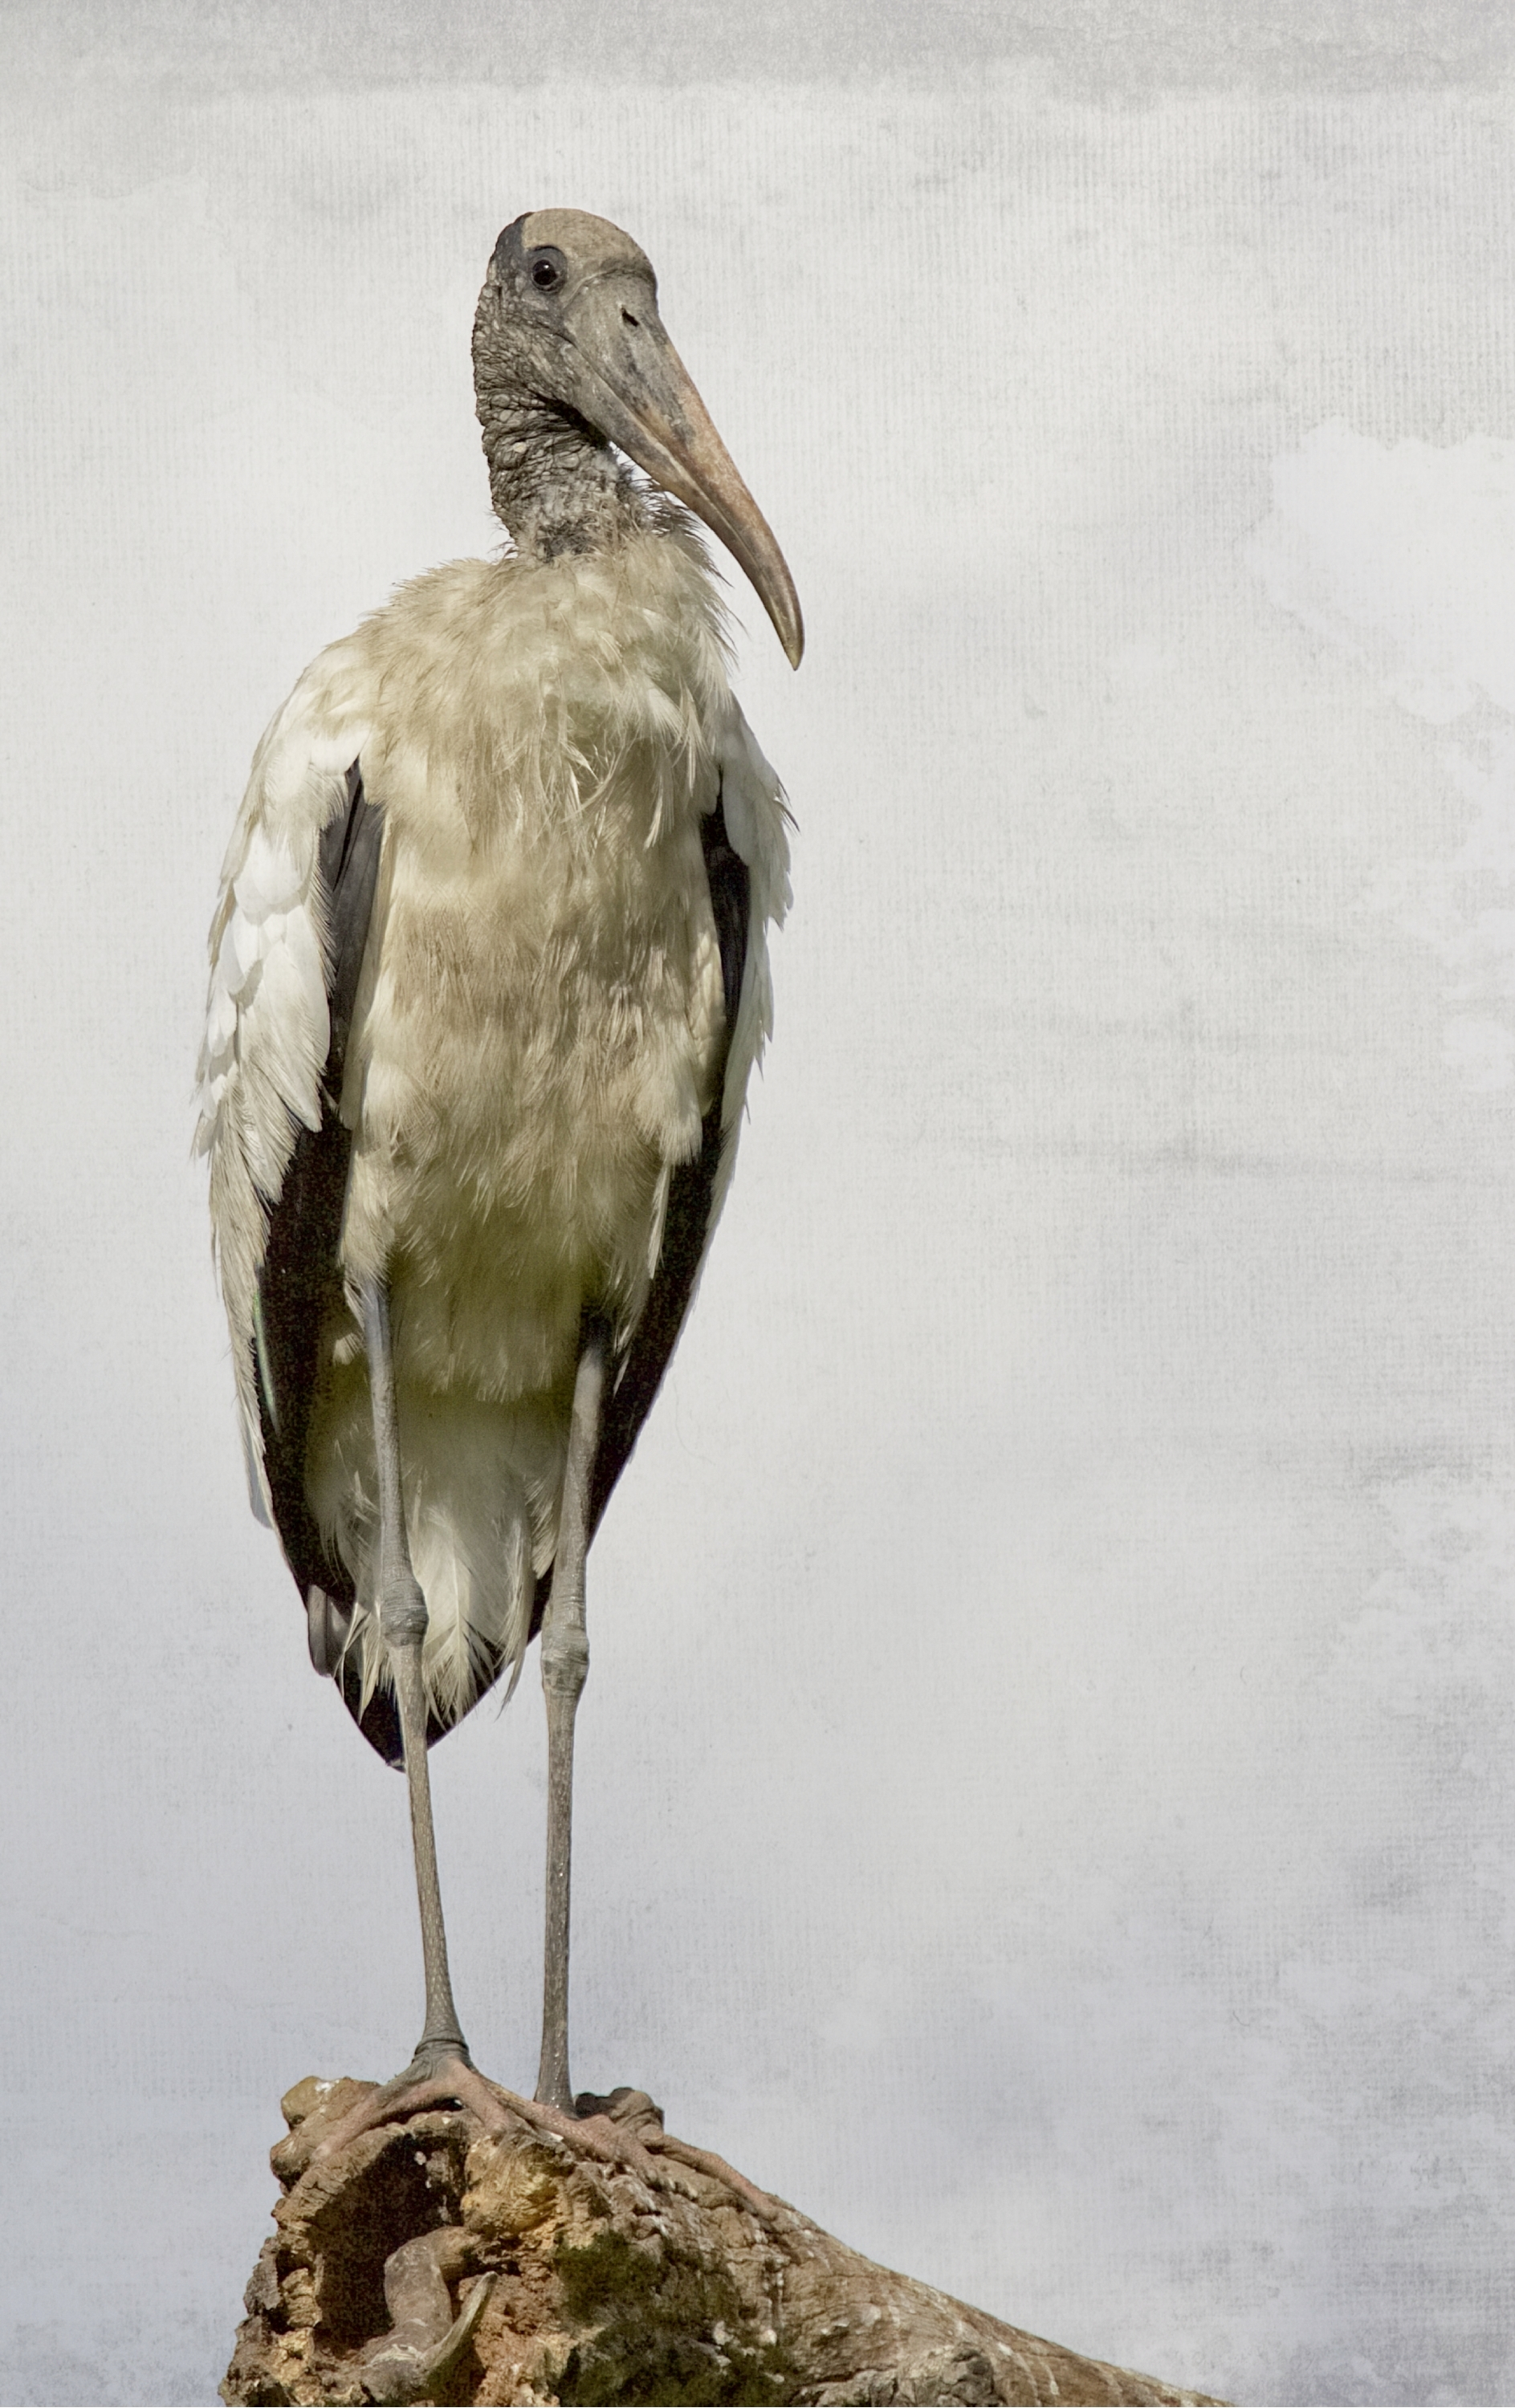 I found one lone Wood Stork...he looks like he could use a drink of Cool Clear Water..